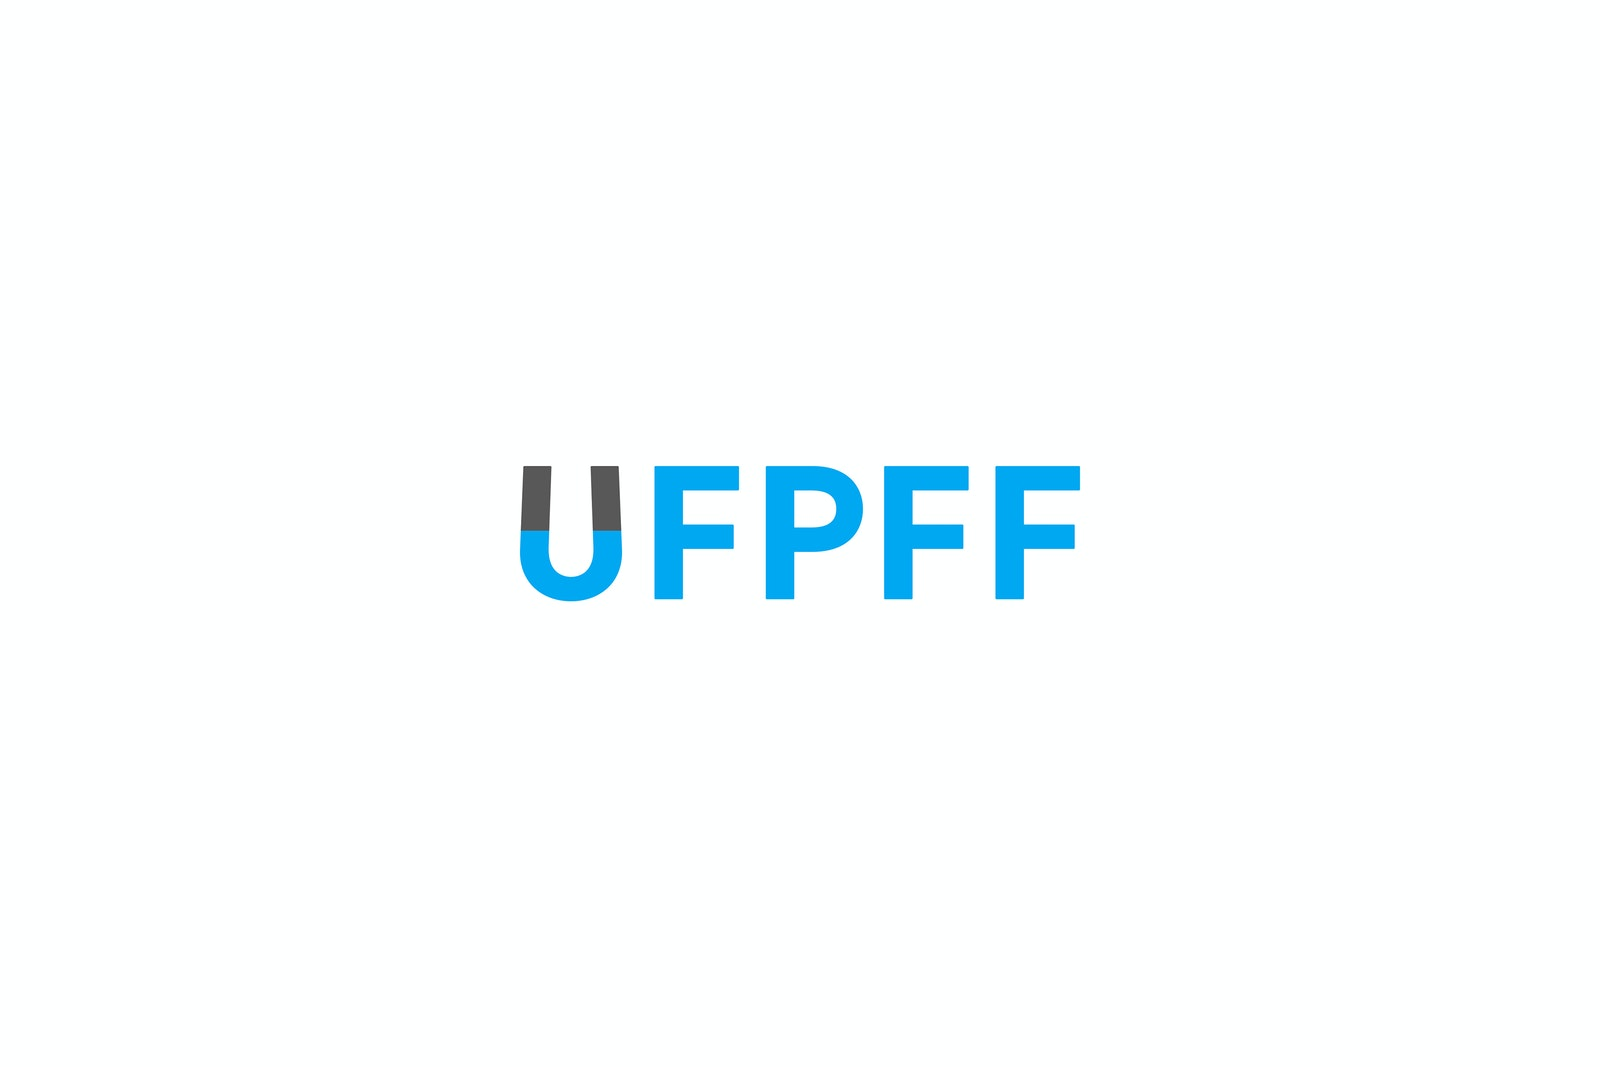 Ufpff(United For Peace Film Festival)